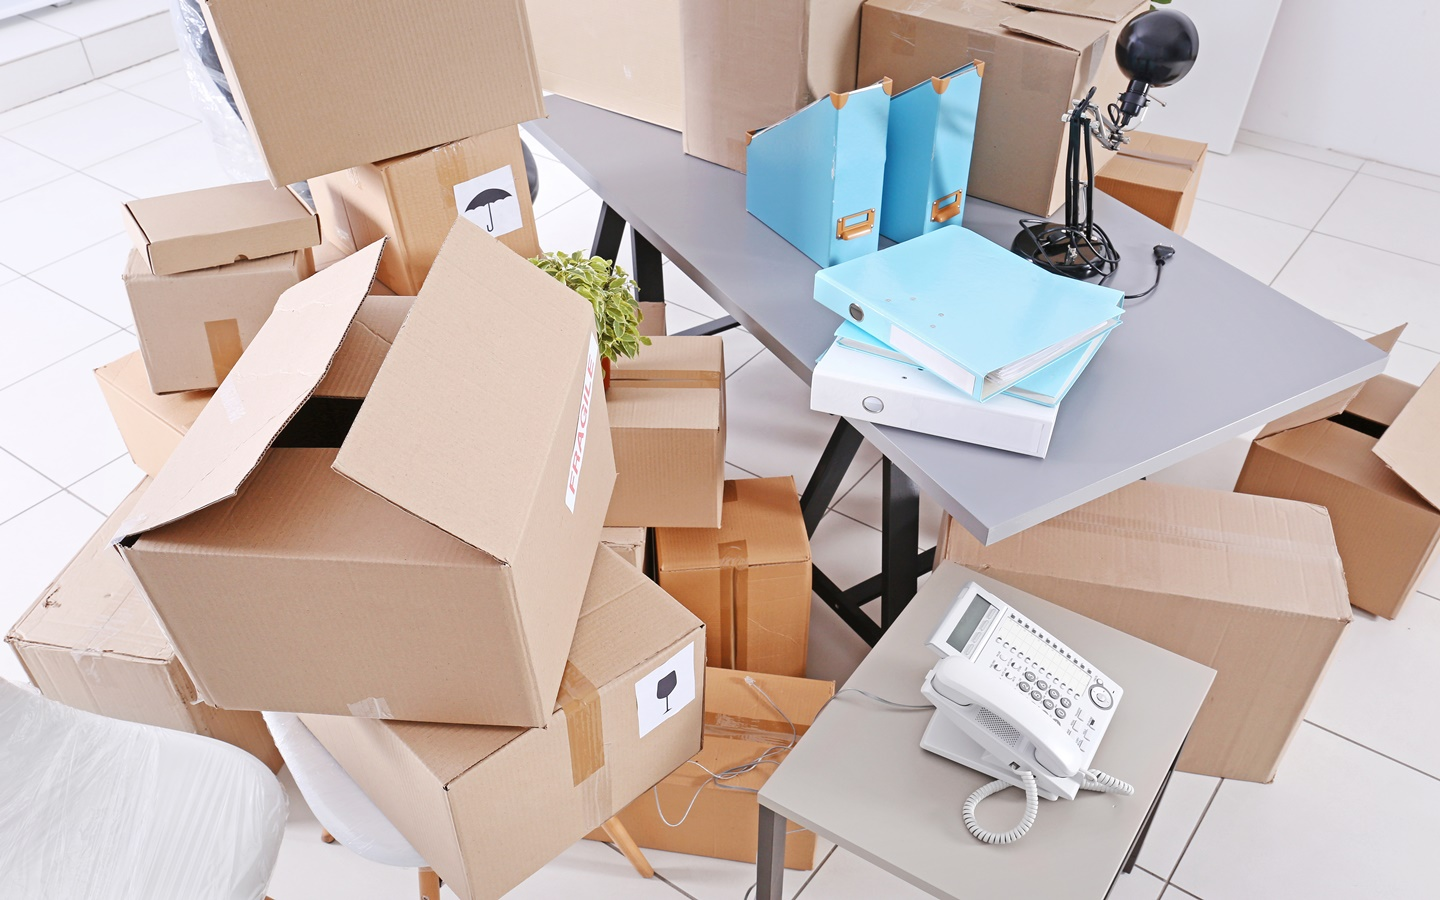 Office Shifting Tips for Moving to a New Space